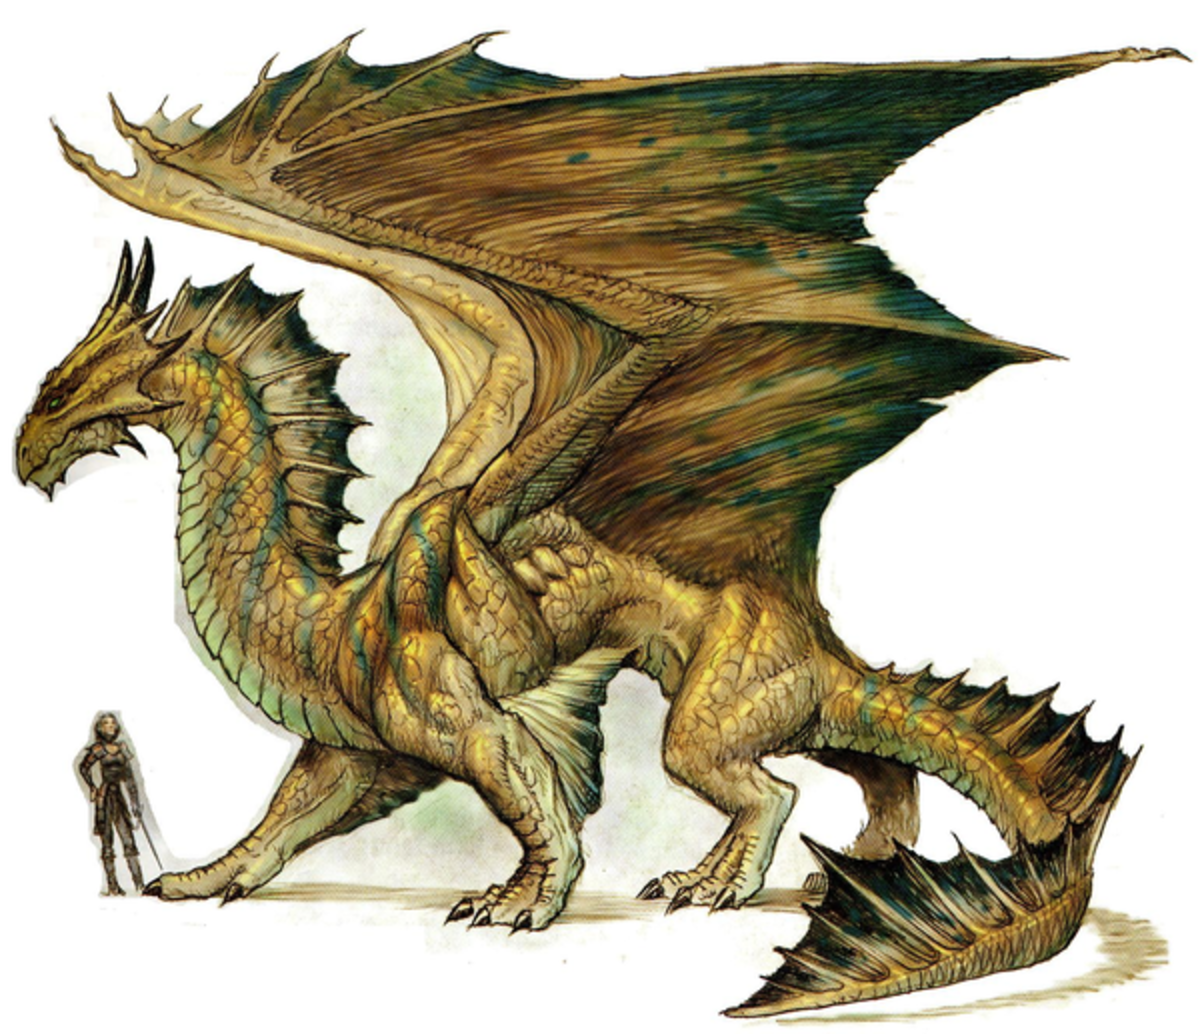 In Dungeons and Dragons, adventurers are led on a quest by the Dungeon Master where they will solve puzzles, interact with other non-player characters, and defeat a variety of monsters.